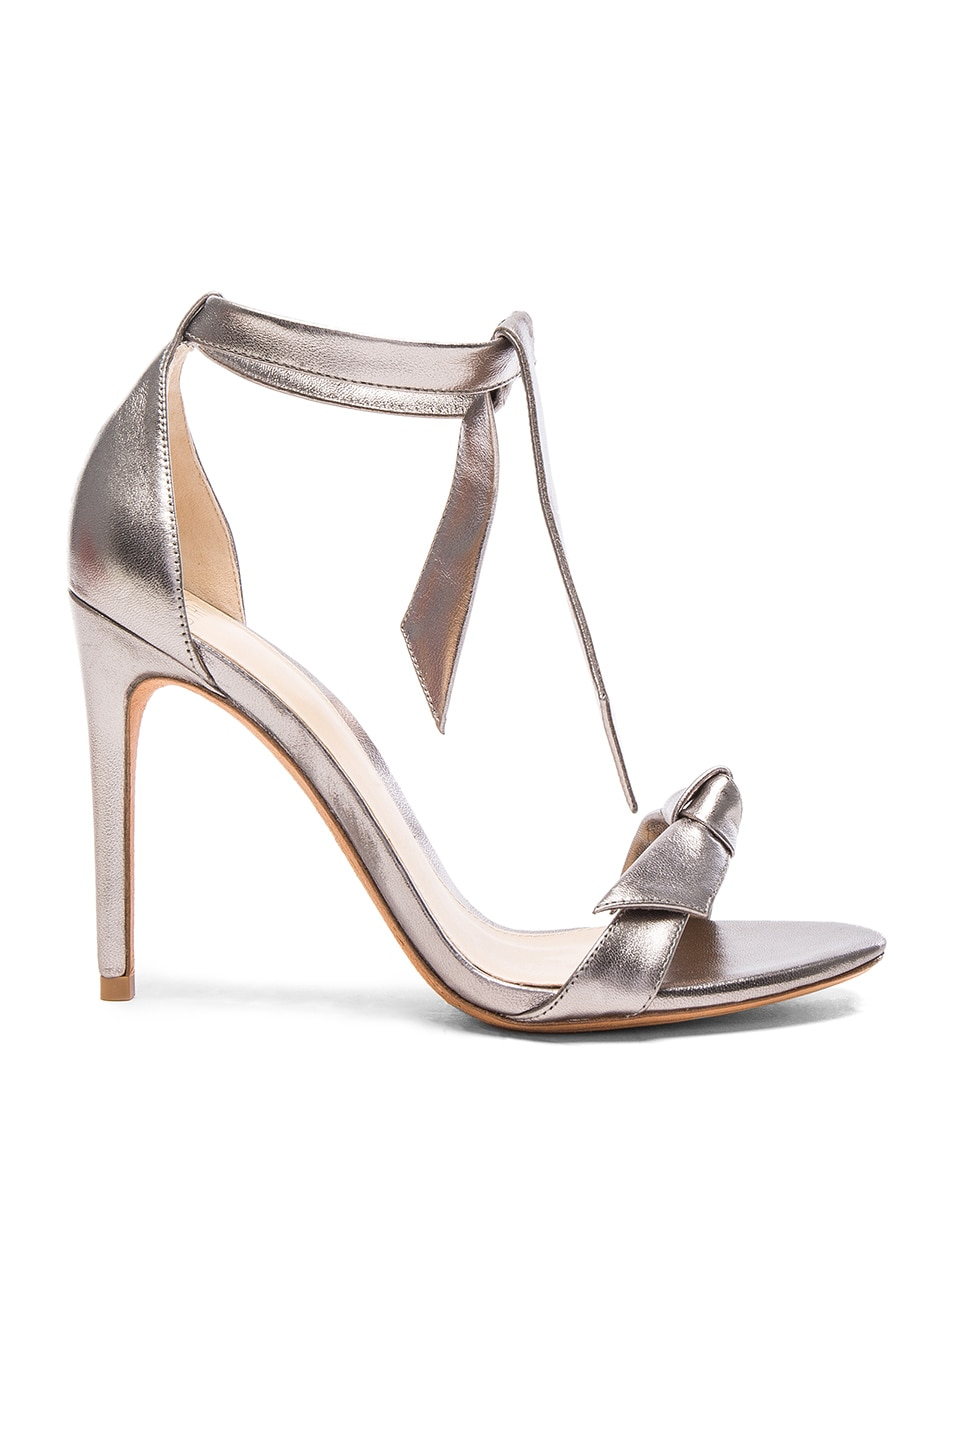 Image 1 of Alexandre Birman Leather Clarita Heels in Limestone